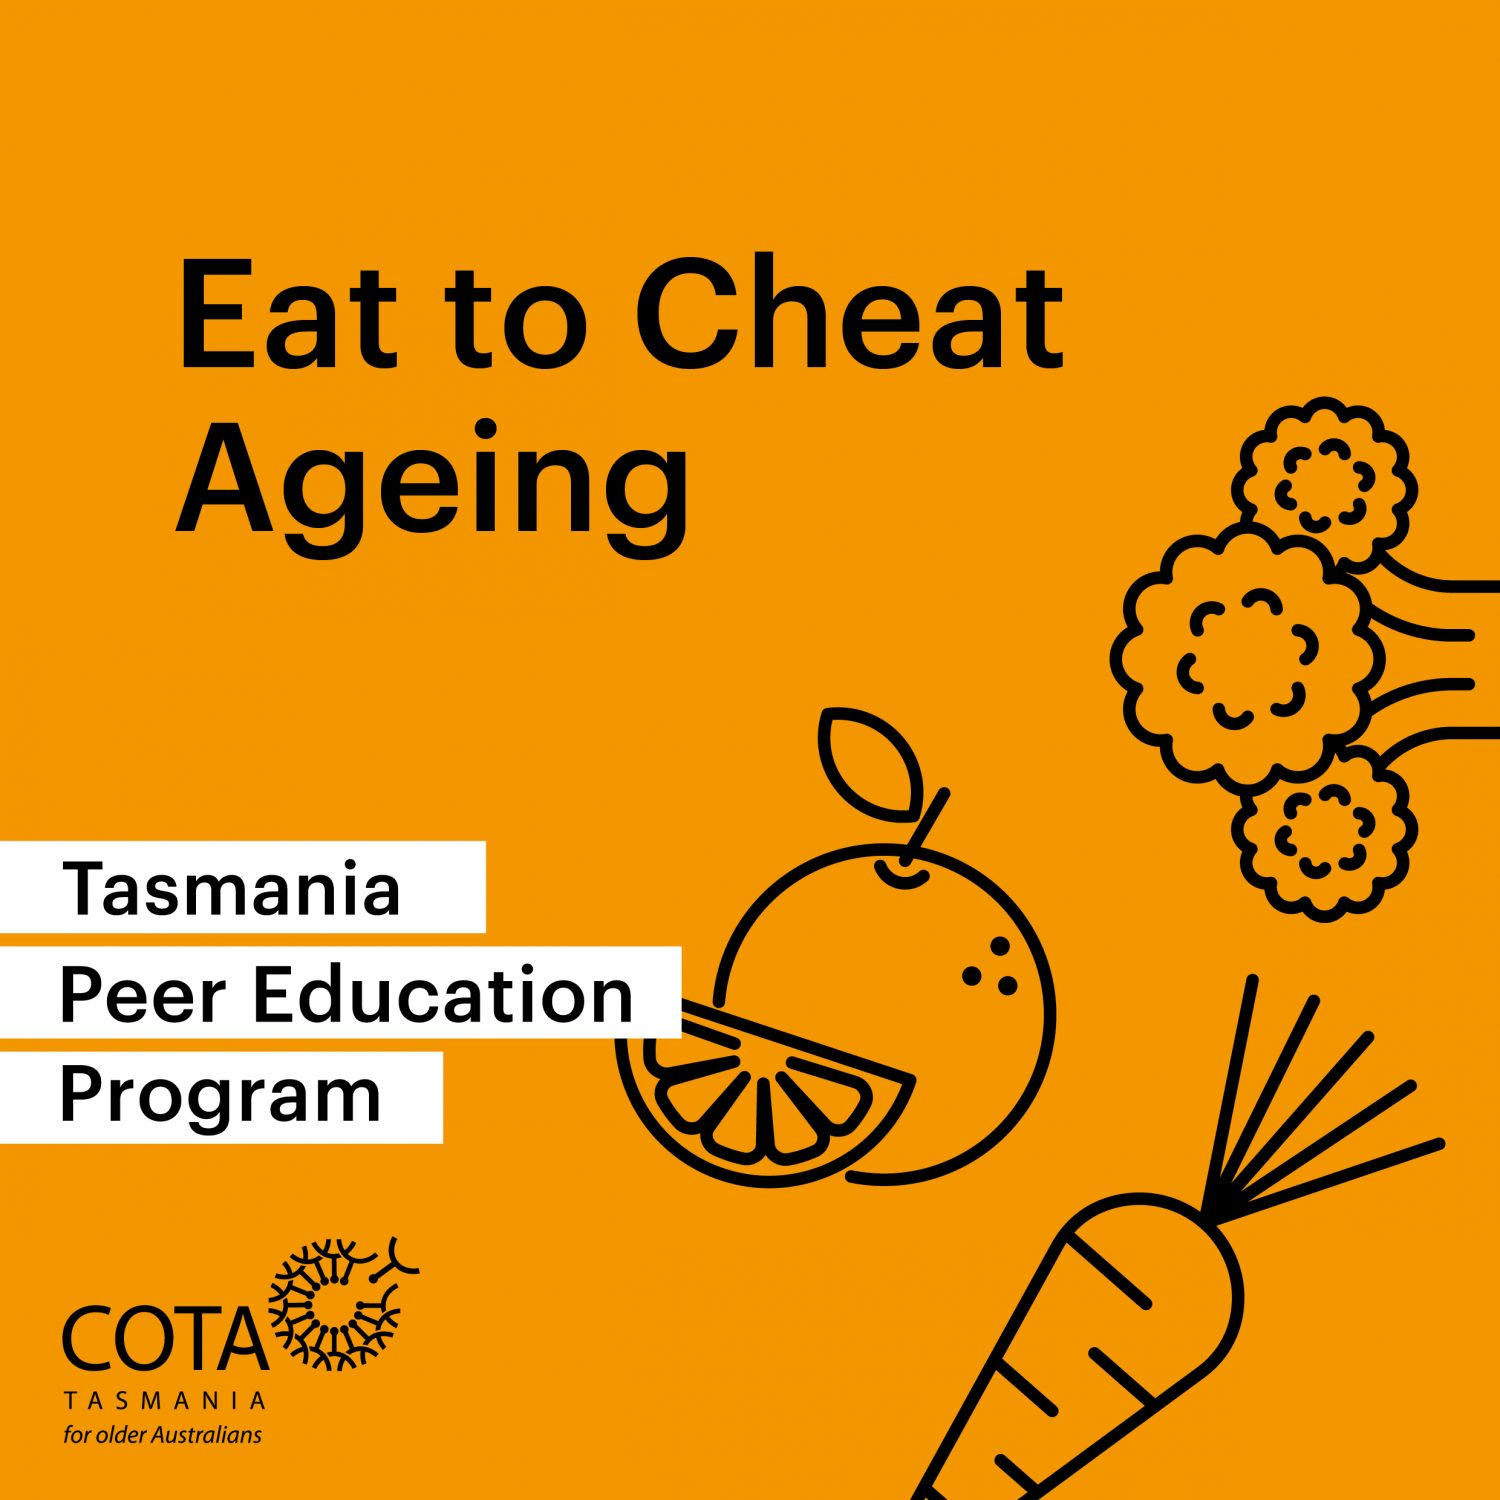 Eat to Cheat Ageing